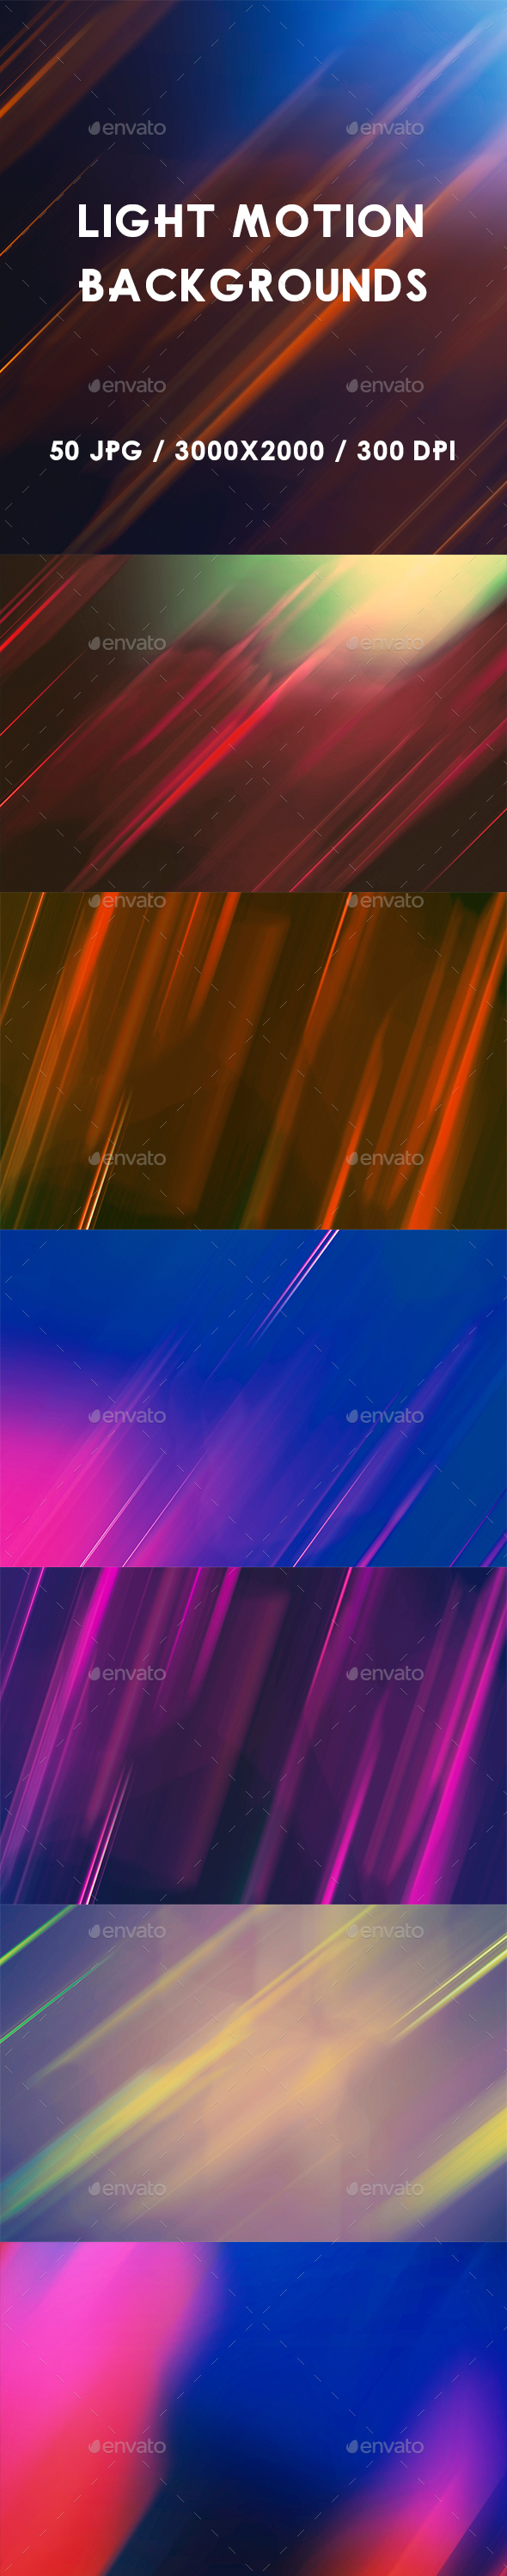 50 Light Motion Backgrounds - Abstract Backgrounds